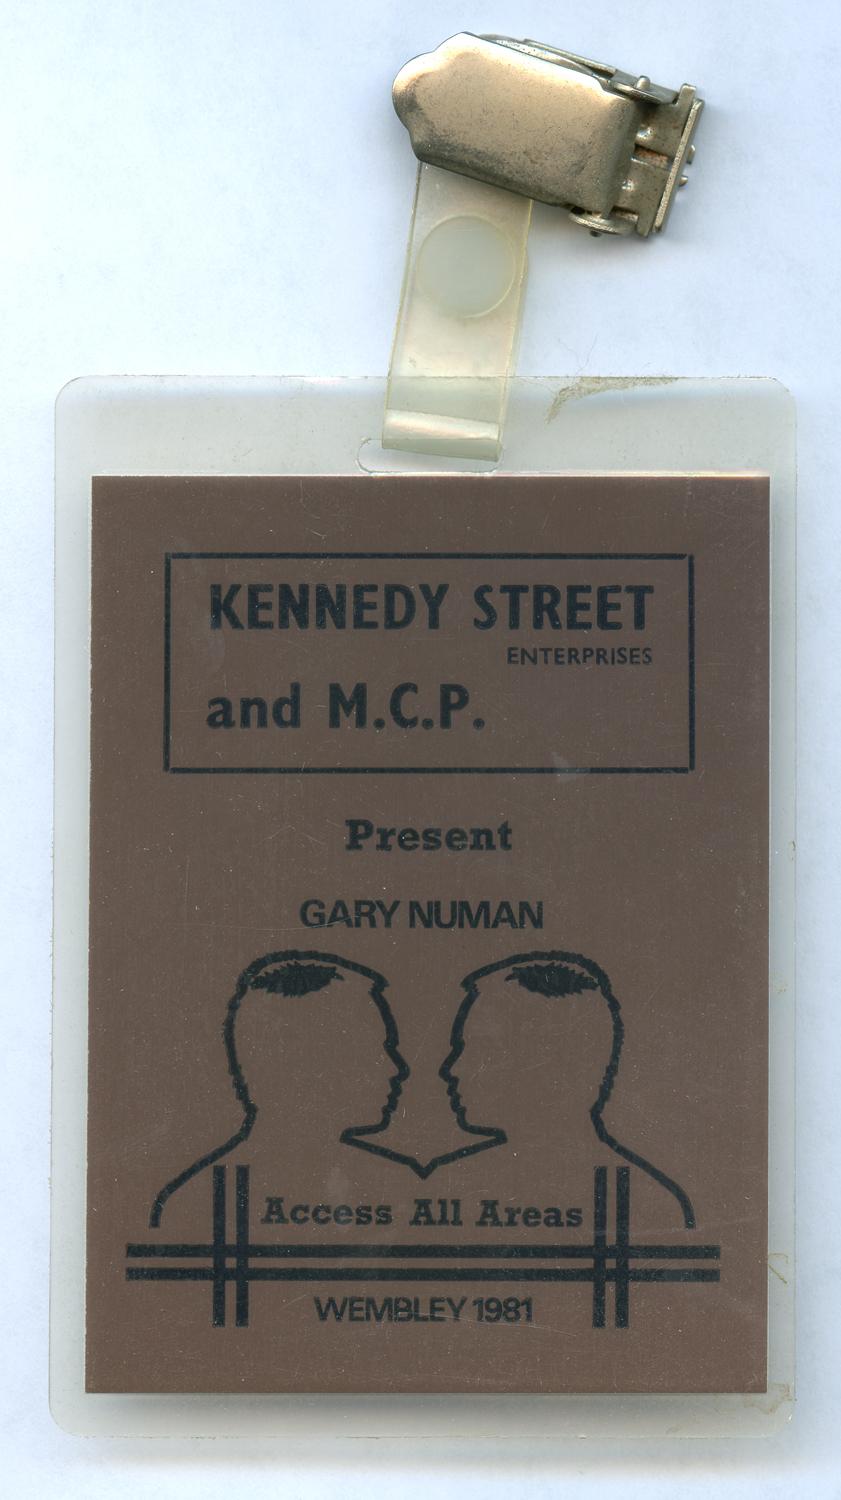 Backstage pass to Gary Numan's 3-night 'farewell' shows at Wembly Arena, where Nash played as a guest musician in Numan's band, 1981.